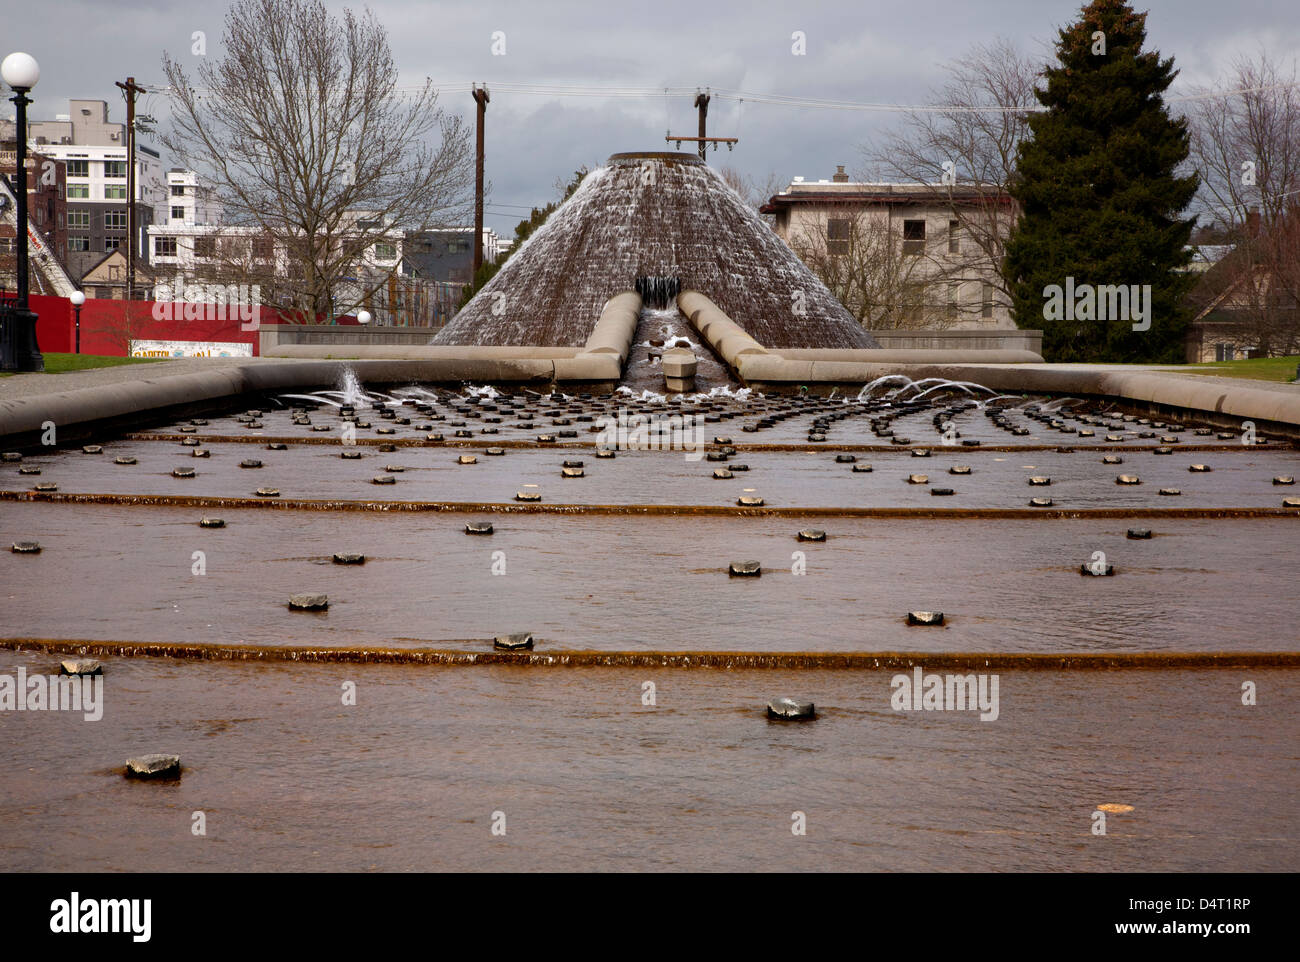 WA08183-00...WASHINGTON - Mountain shaped water fountain and Texture Pond at Cal Anderson Park on Capitol Hill in - Stock Image